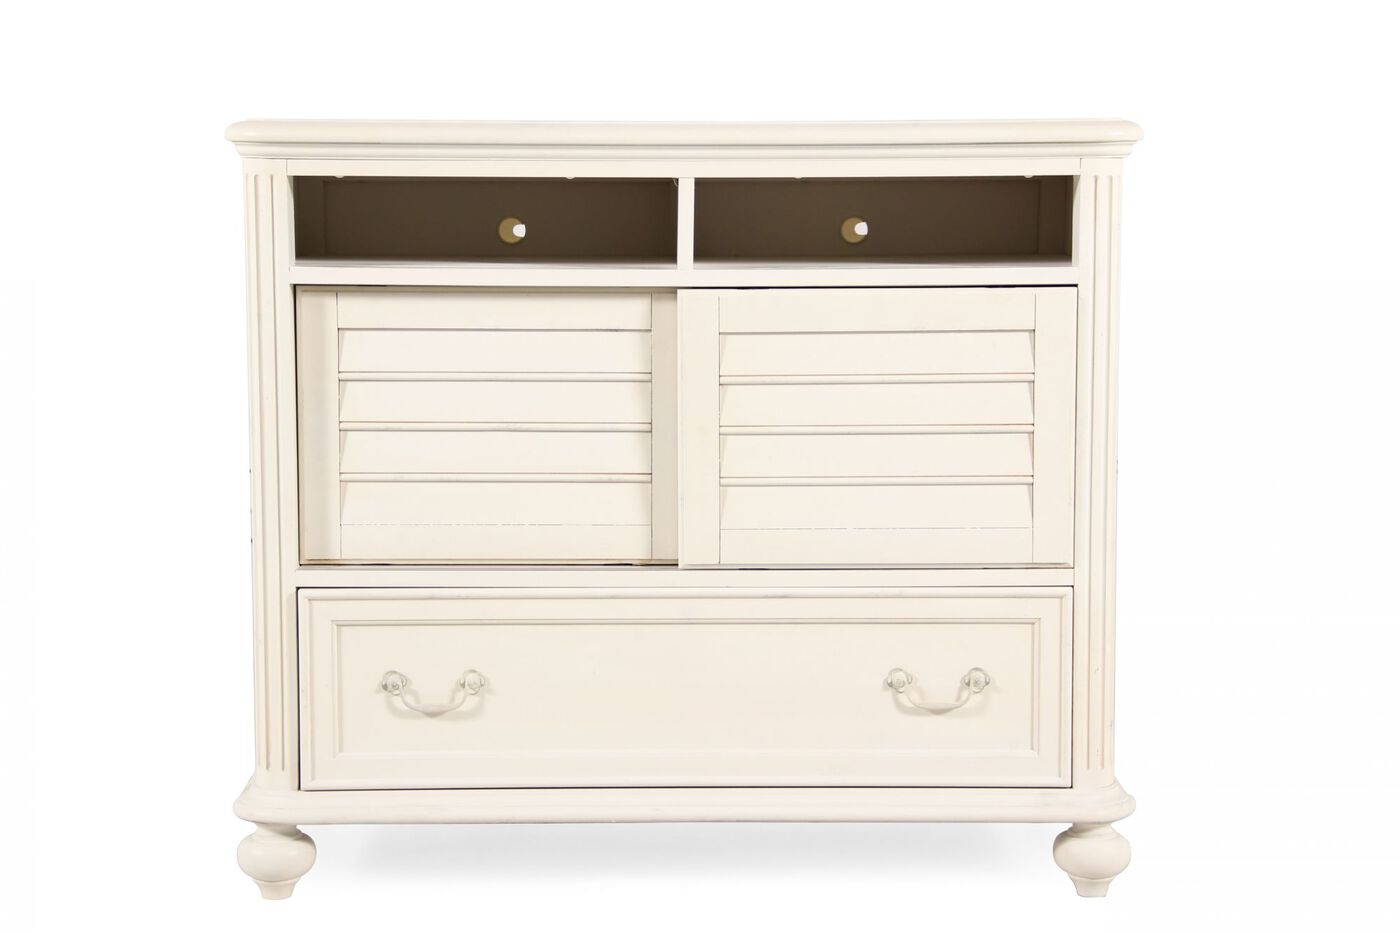 38 contemporary sliding door media chest in white mathis brothers furniture for White media chest for bedroom